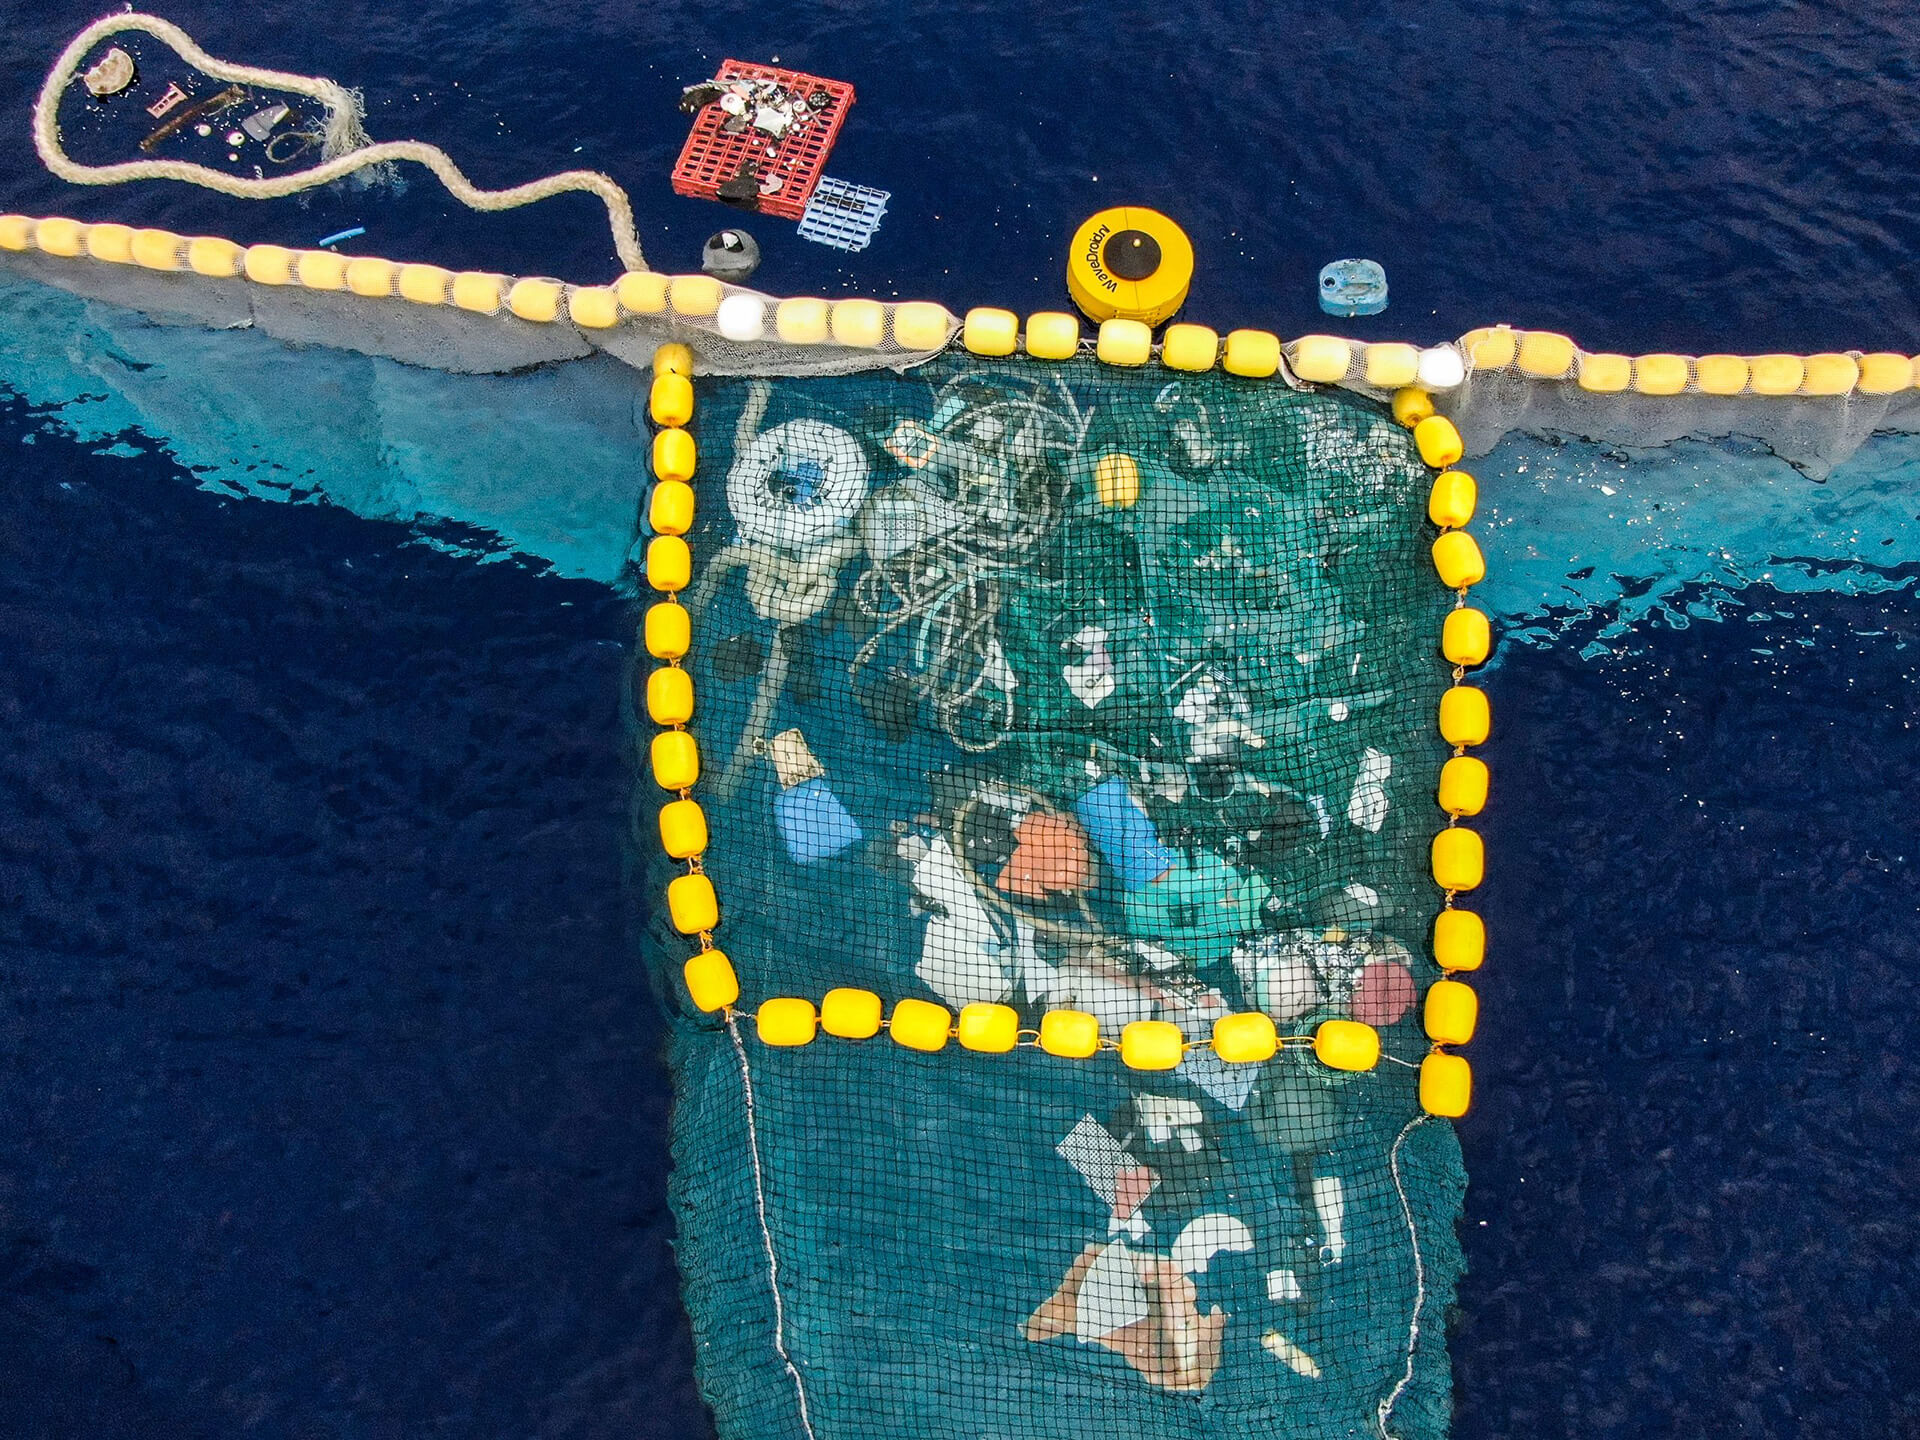 Plastic caught inside System 001/B in 2019 | The Ocean Cleanup Sunglasses | STIRworld